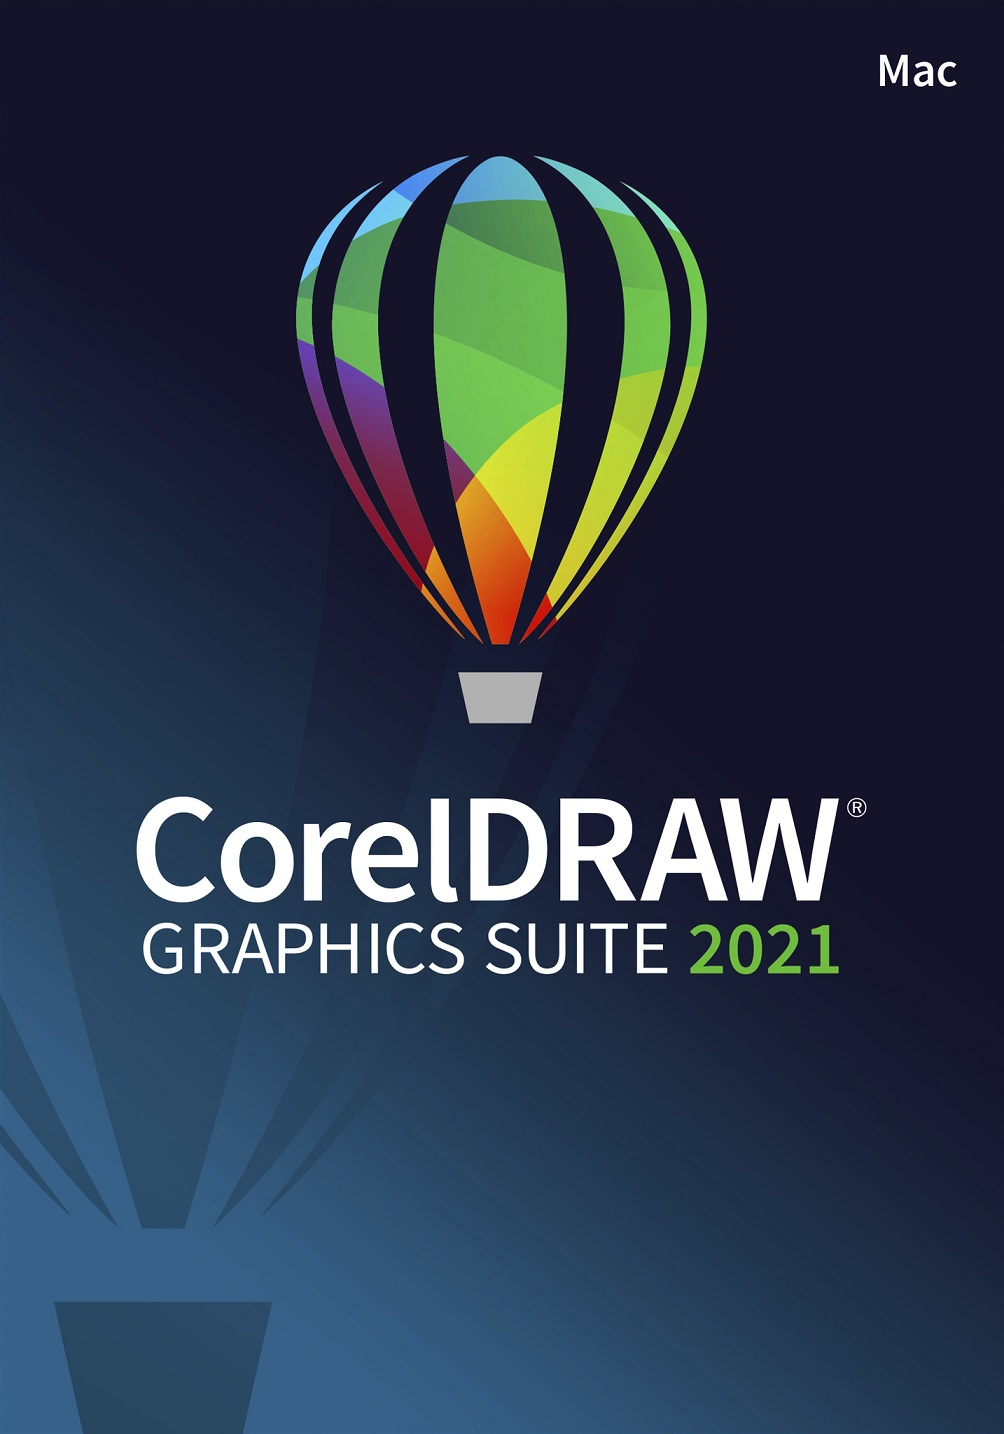 CorelDRAW Graphics Suite 2021 EDULic Mac Singl usr